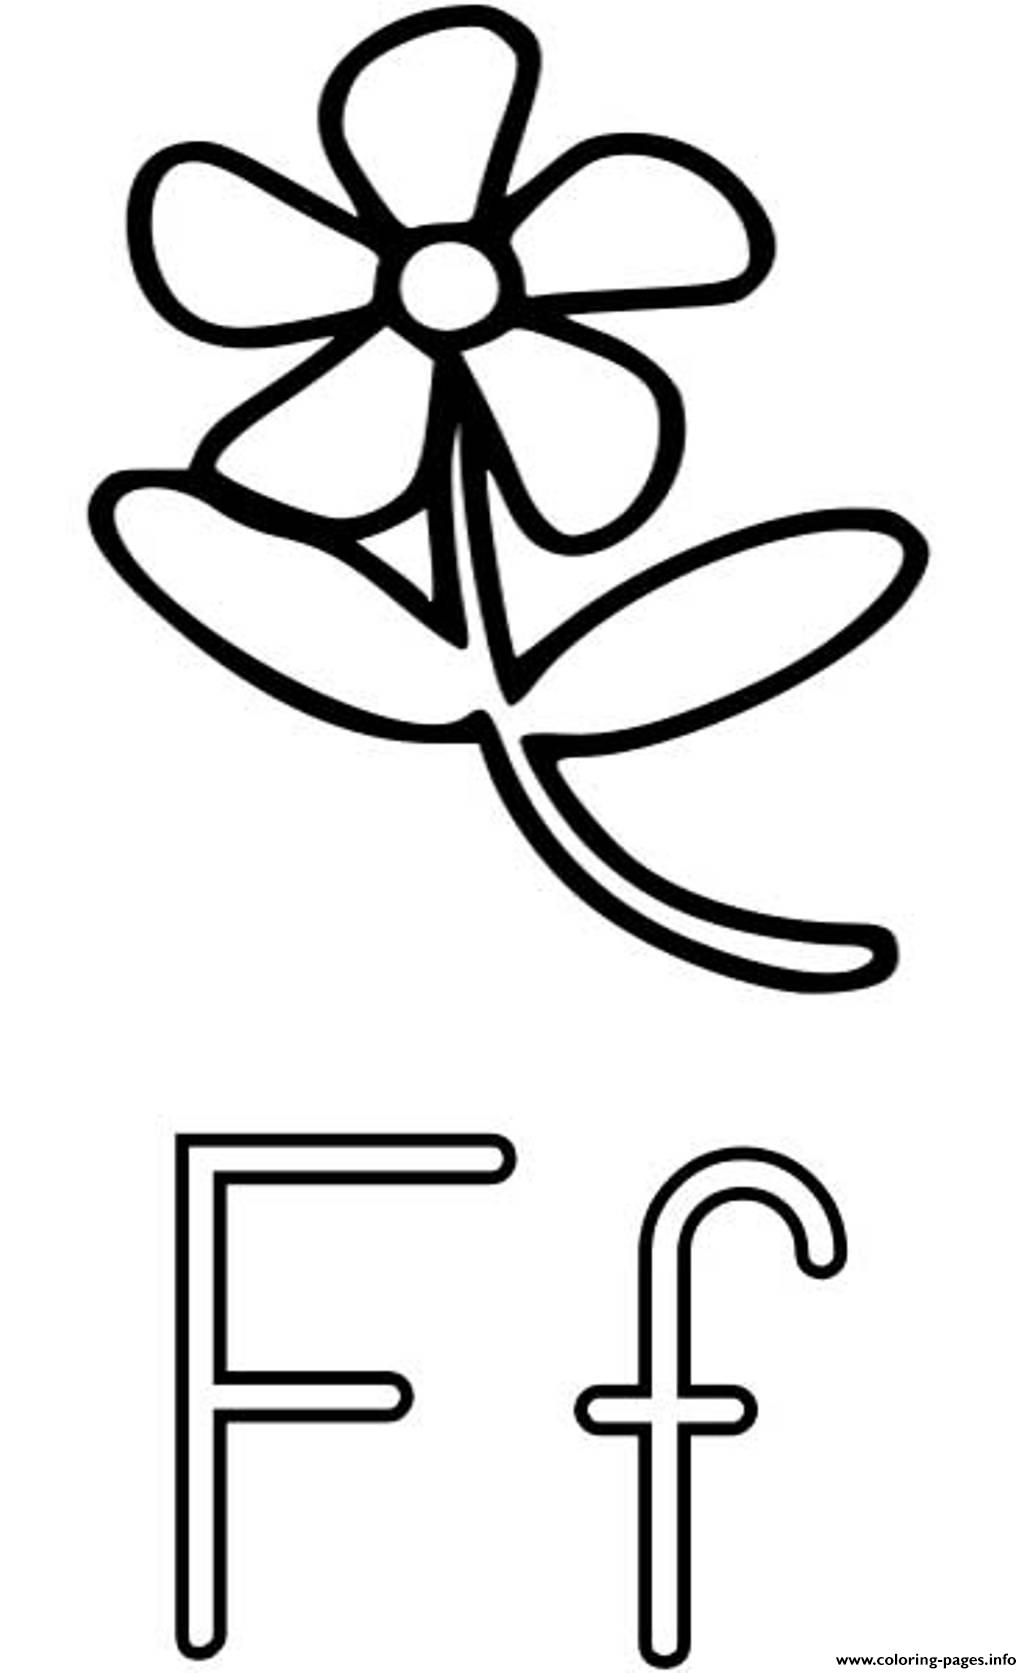 Flower F Free Alphabet S6a23 Coloring